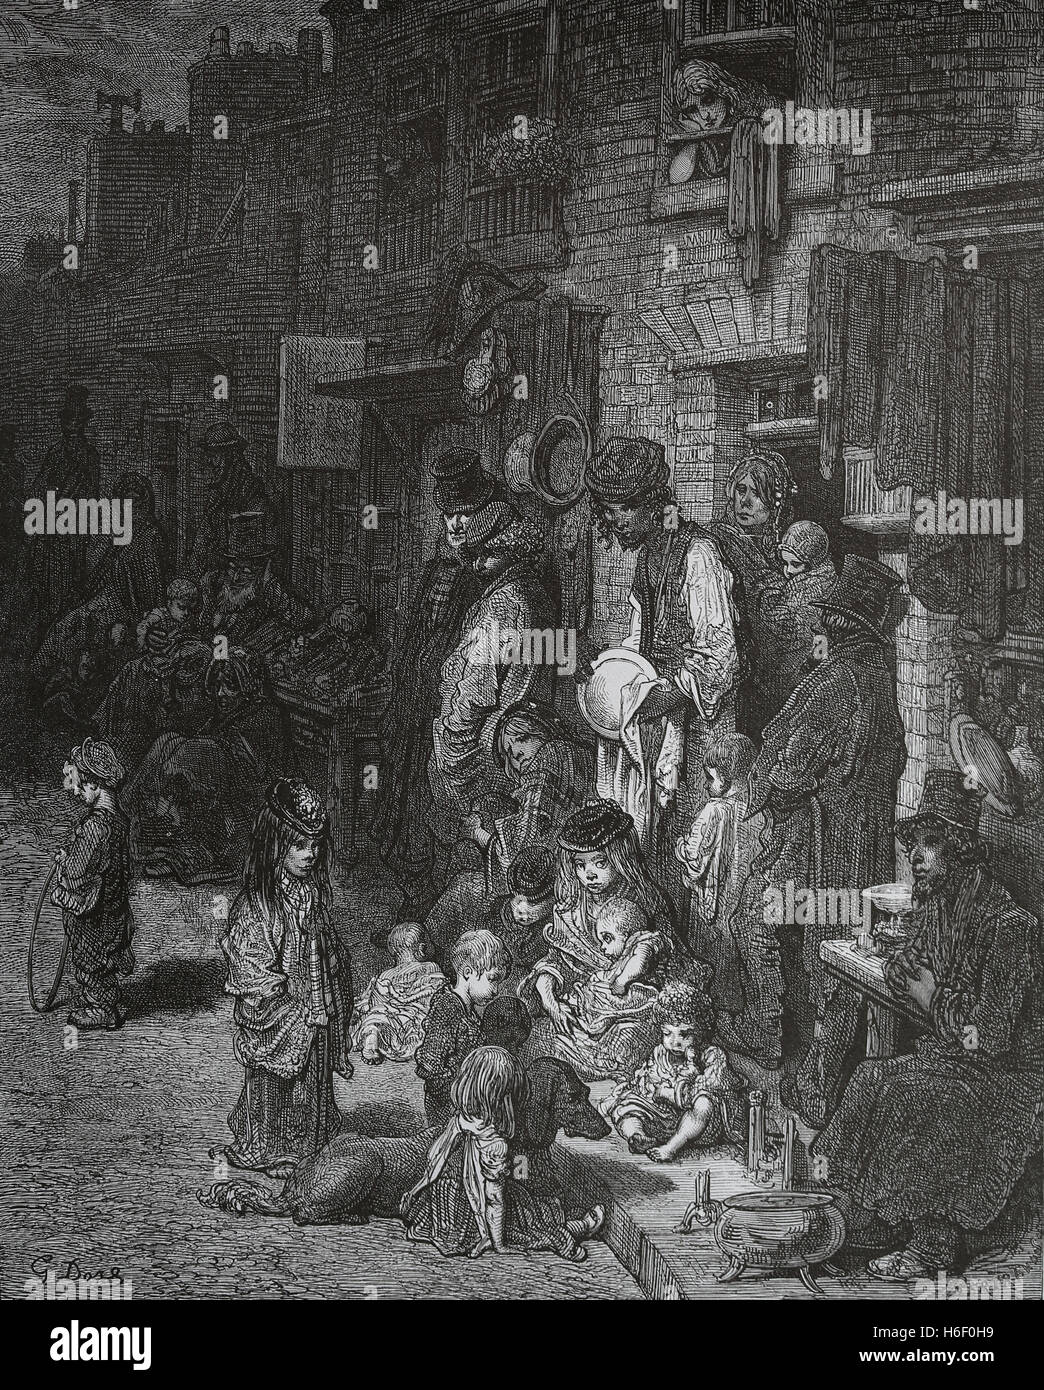 United Kingdom. London. Whitechapel. Neighborhood of working class. Engraving by Gustave Dore, London; A Pilgrimage. - Stock Image